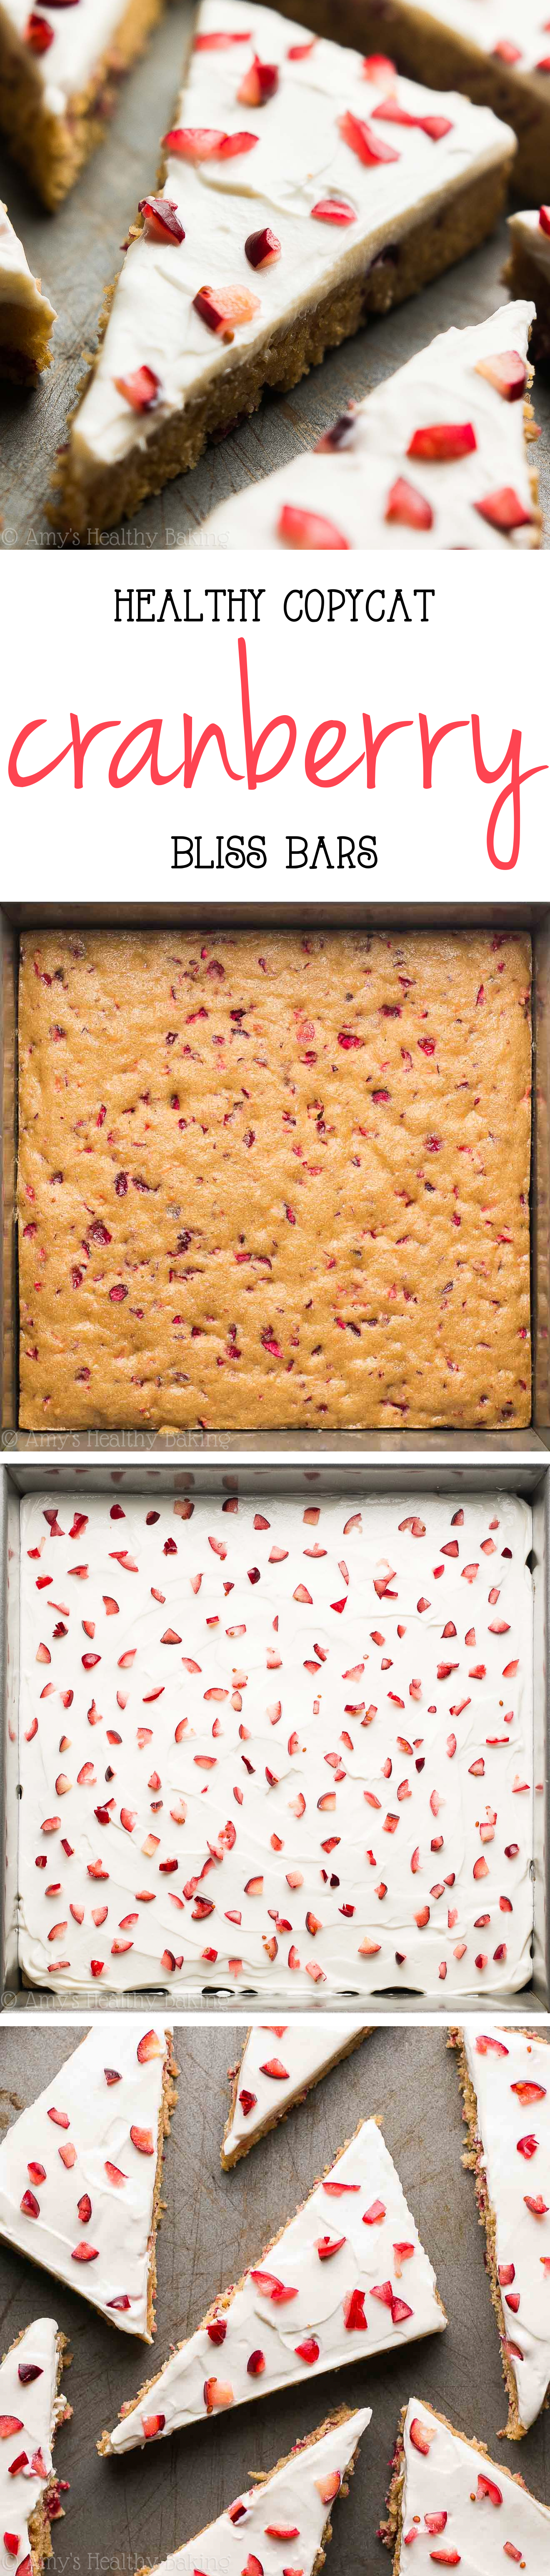 Healthy Copycat Cranberry Bliss Bars -- only 108 calories! And they taste even better than Starbucks!